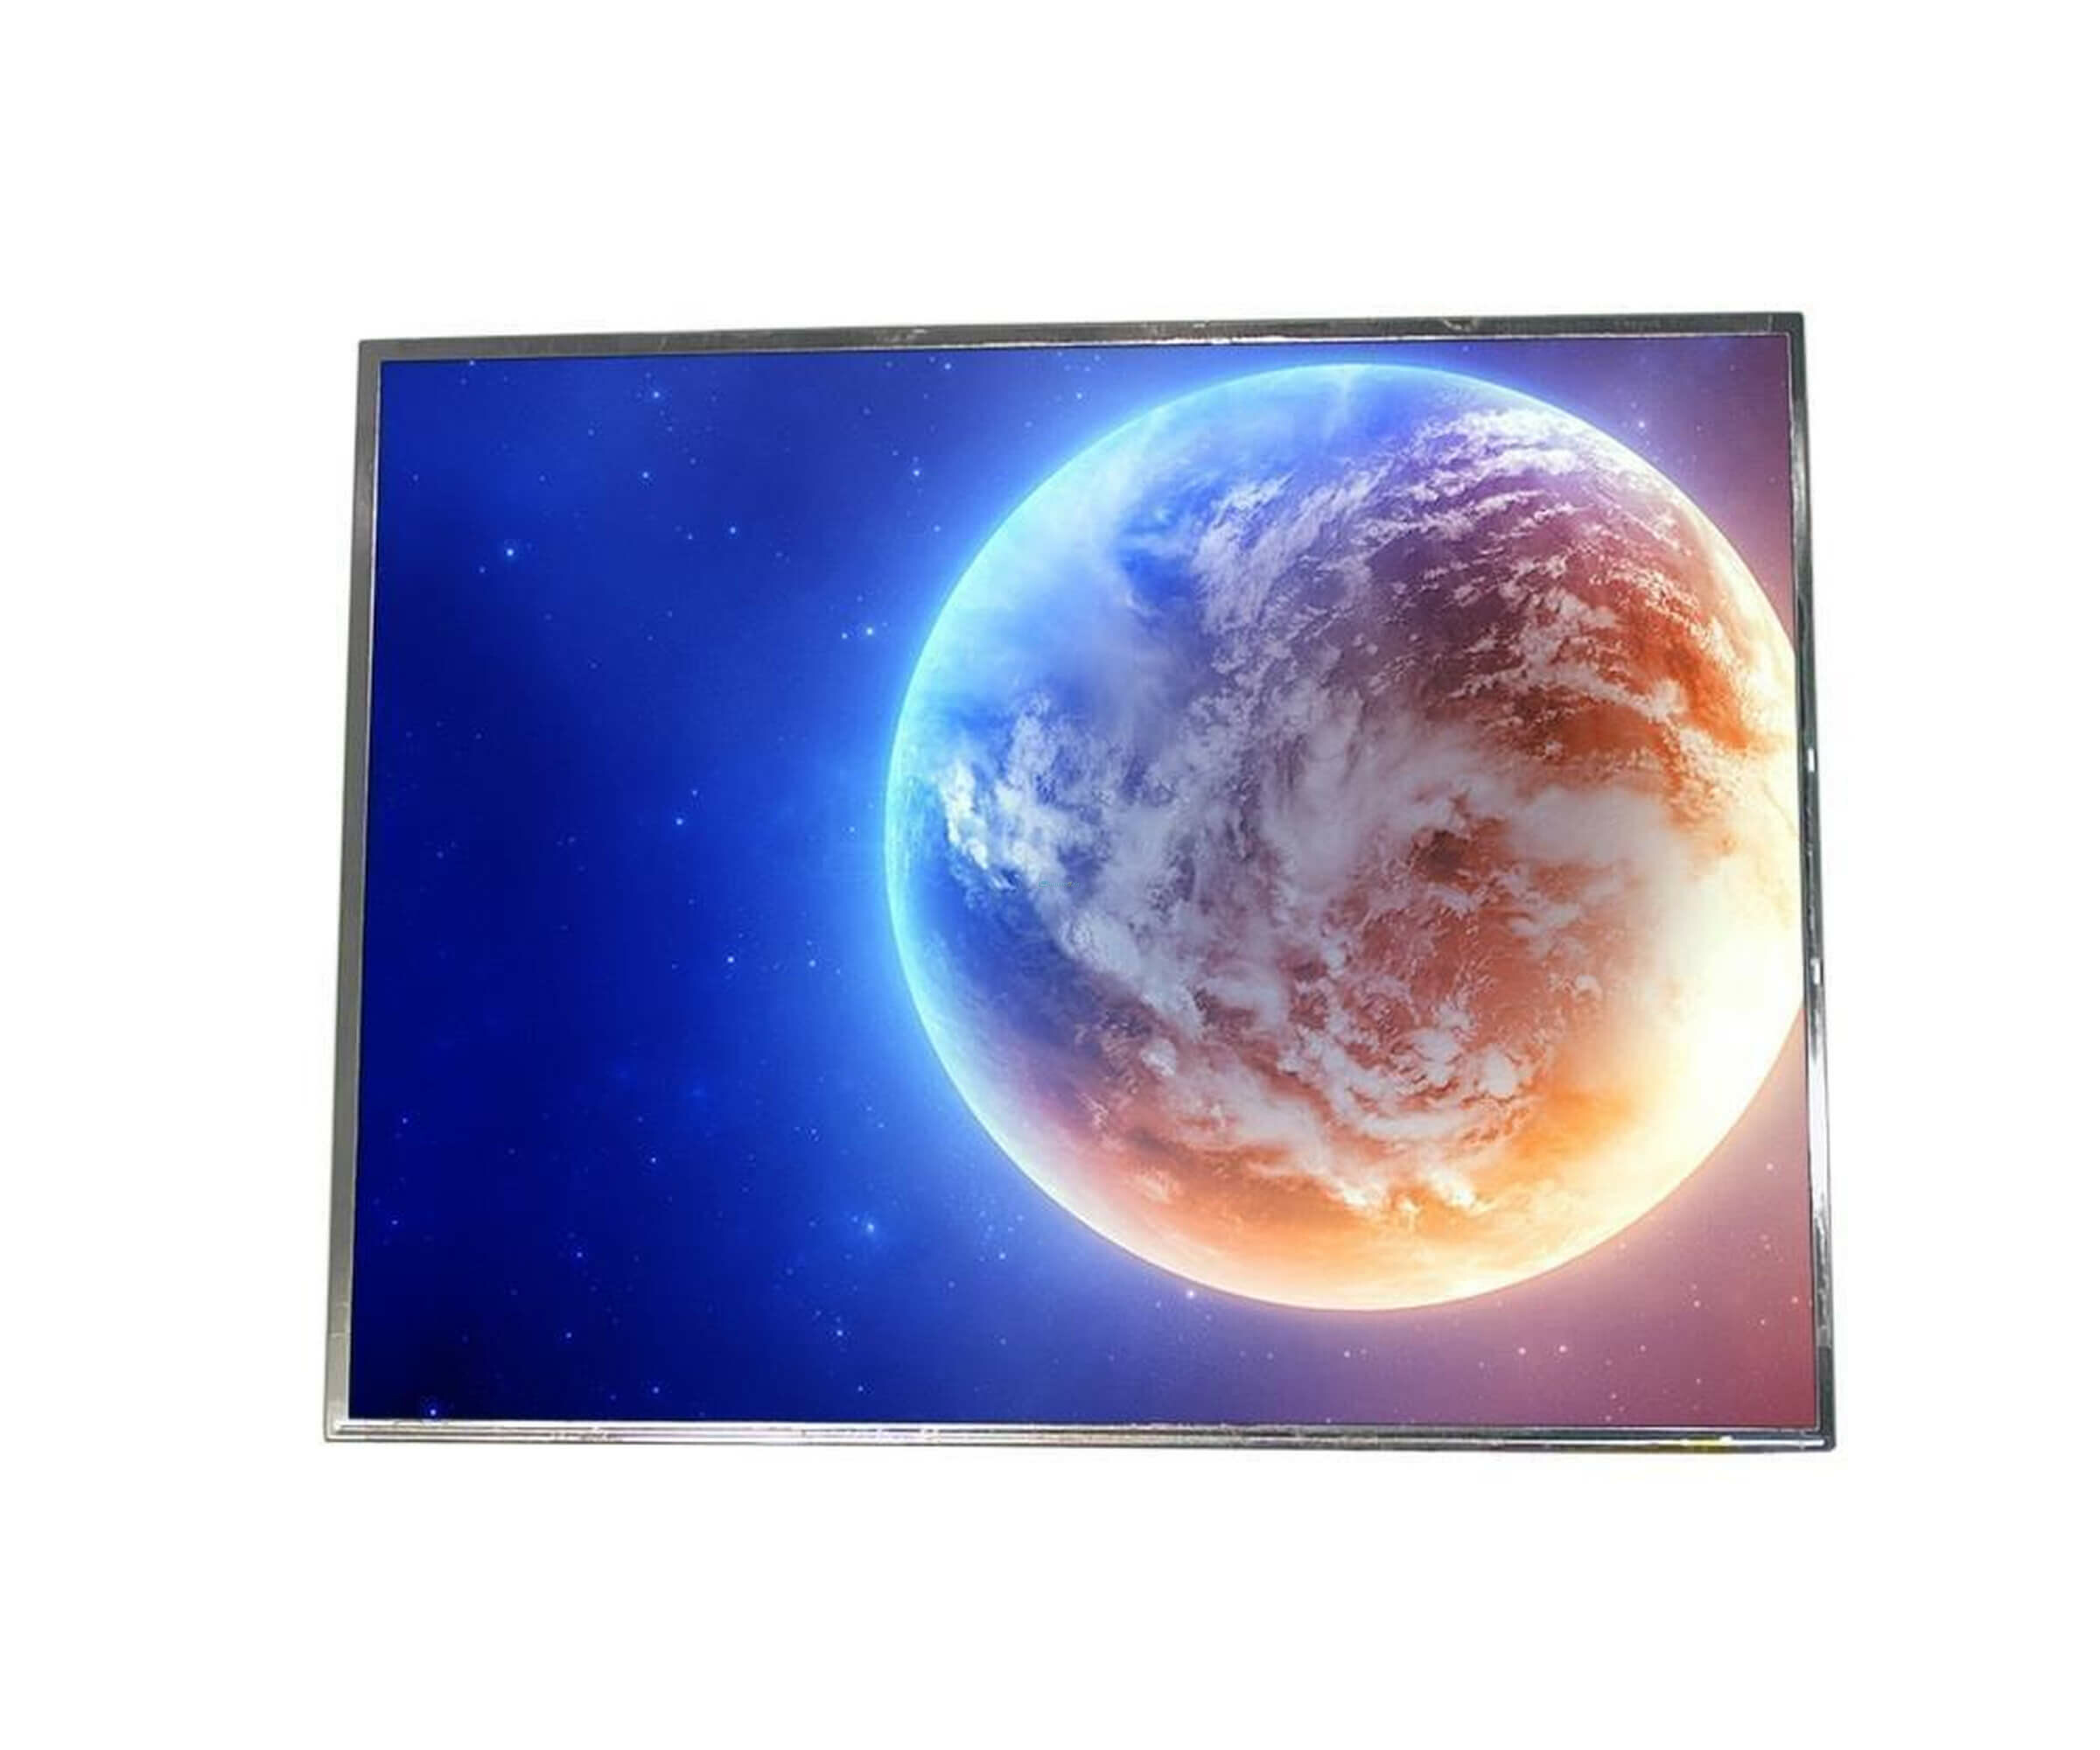 AUO AU Optronics Display - M215HW01 V.0 - 21.5 - 1920 x 1080 - Full HD - CCFL